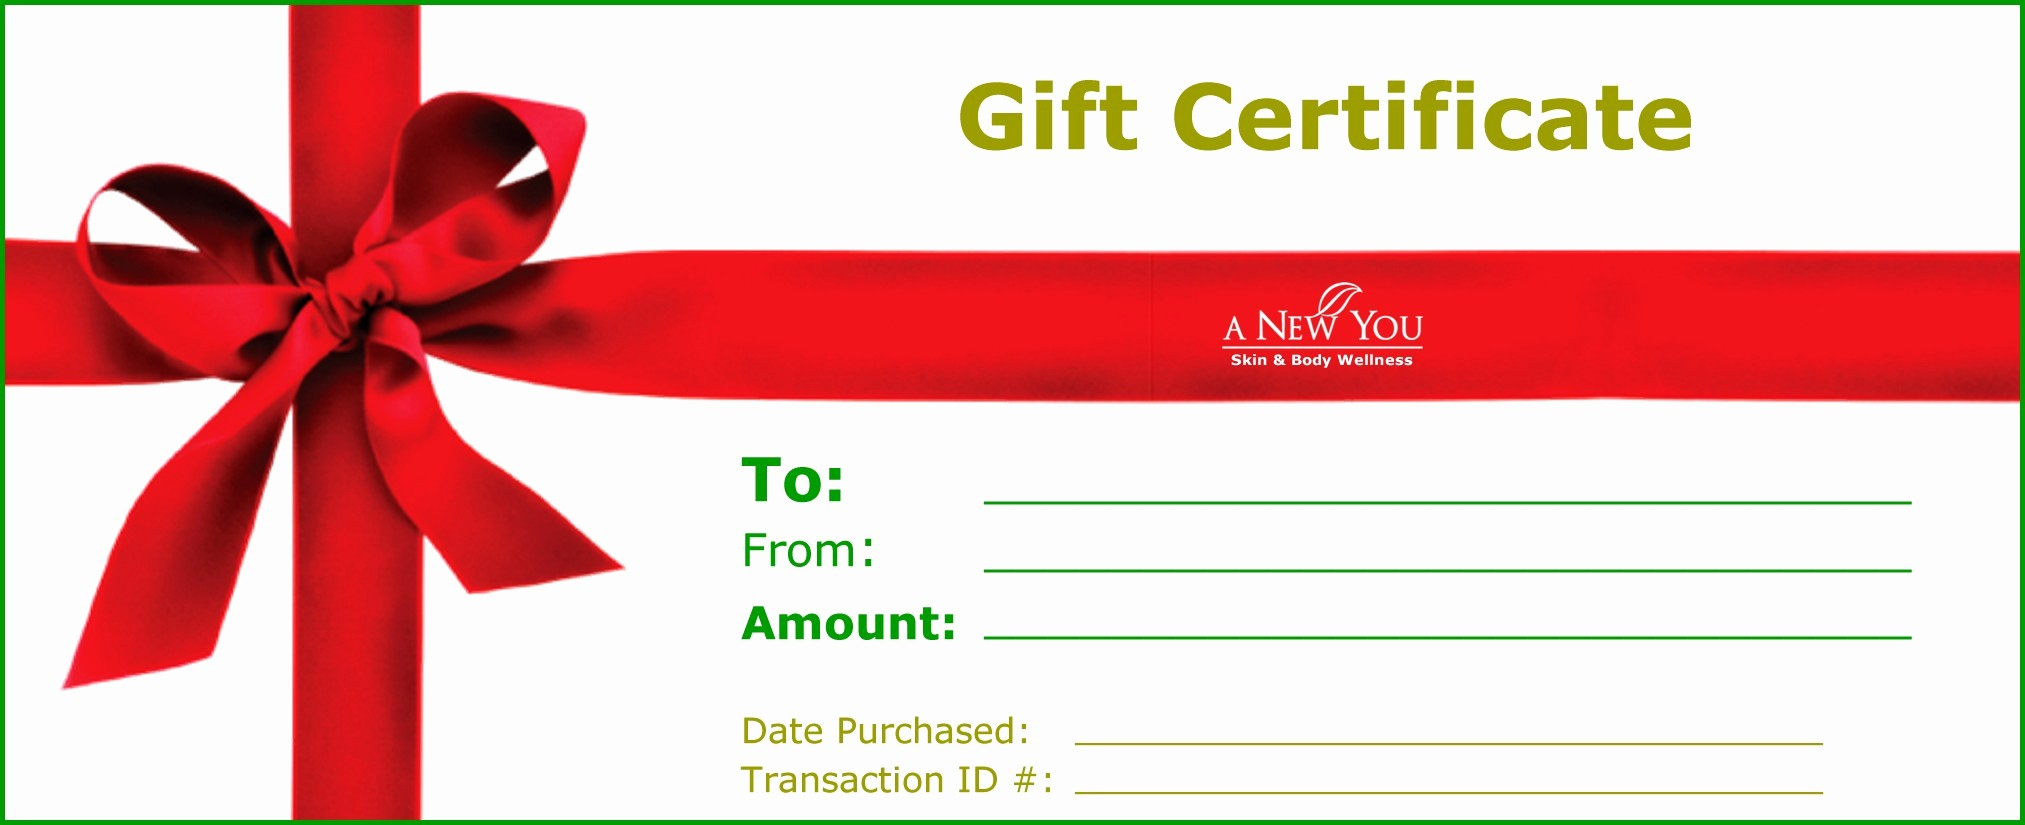 Gift Certificate Samples Free Templates Beautiful 18 Gift Certificate Templates Excel Pdf formats